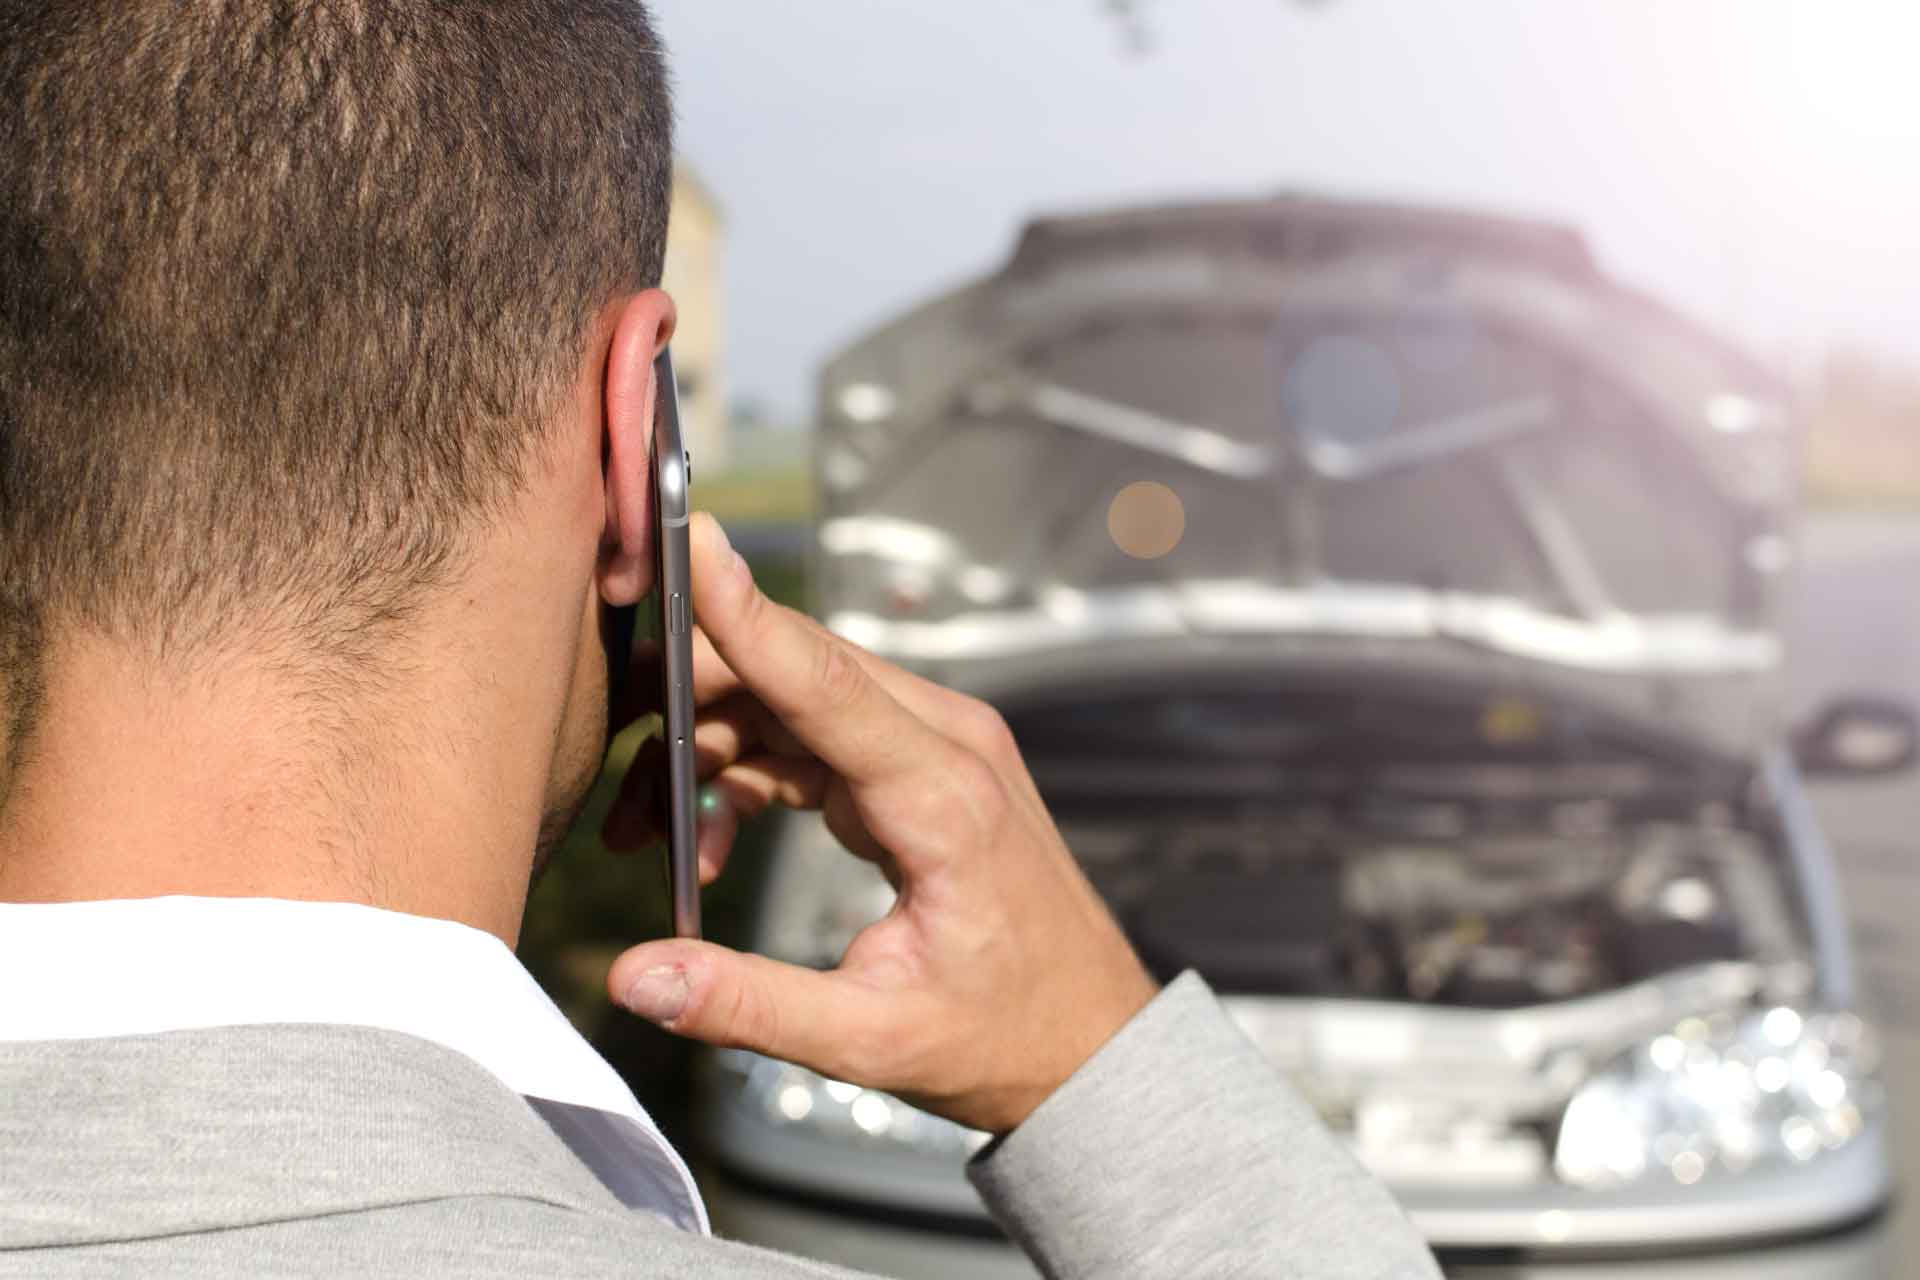 Contact Jackson Towing Pros for 24-hour Emergency auto towing service in Jackson, MS at (601) 851-9060